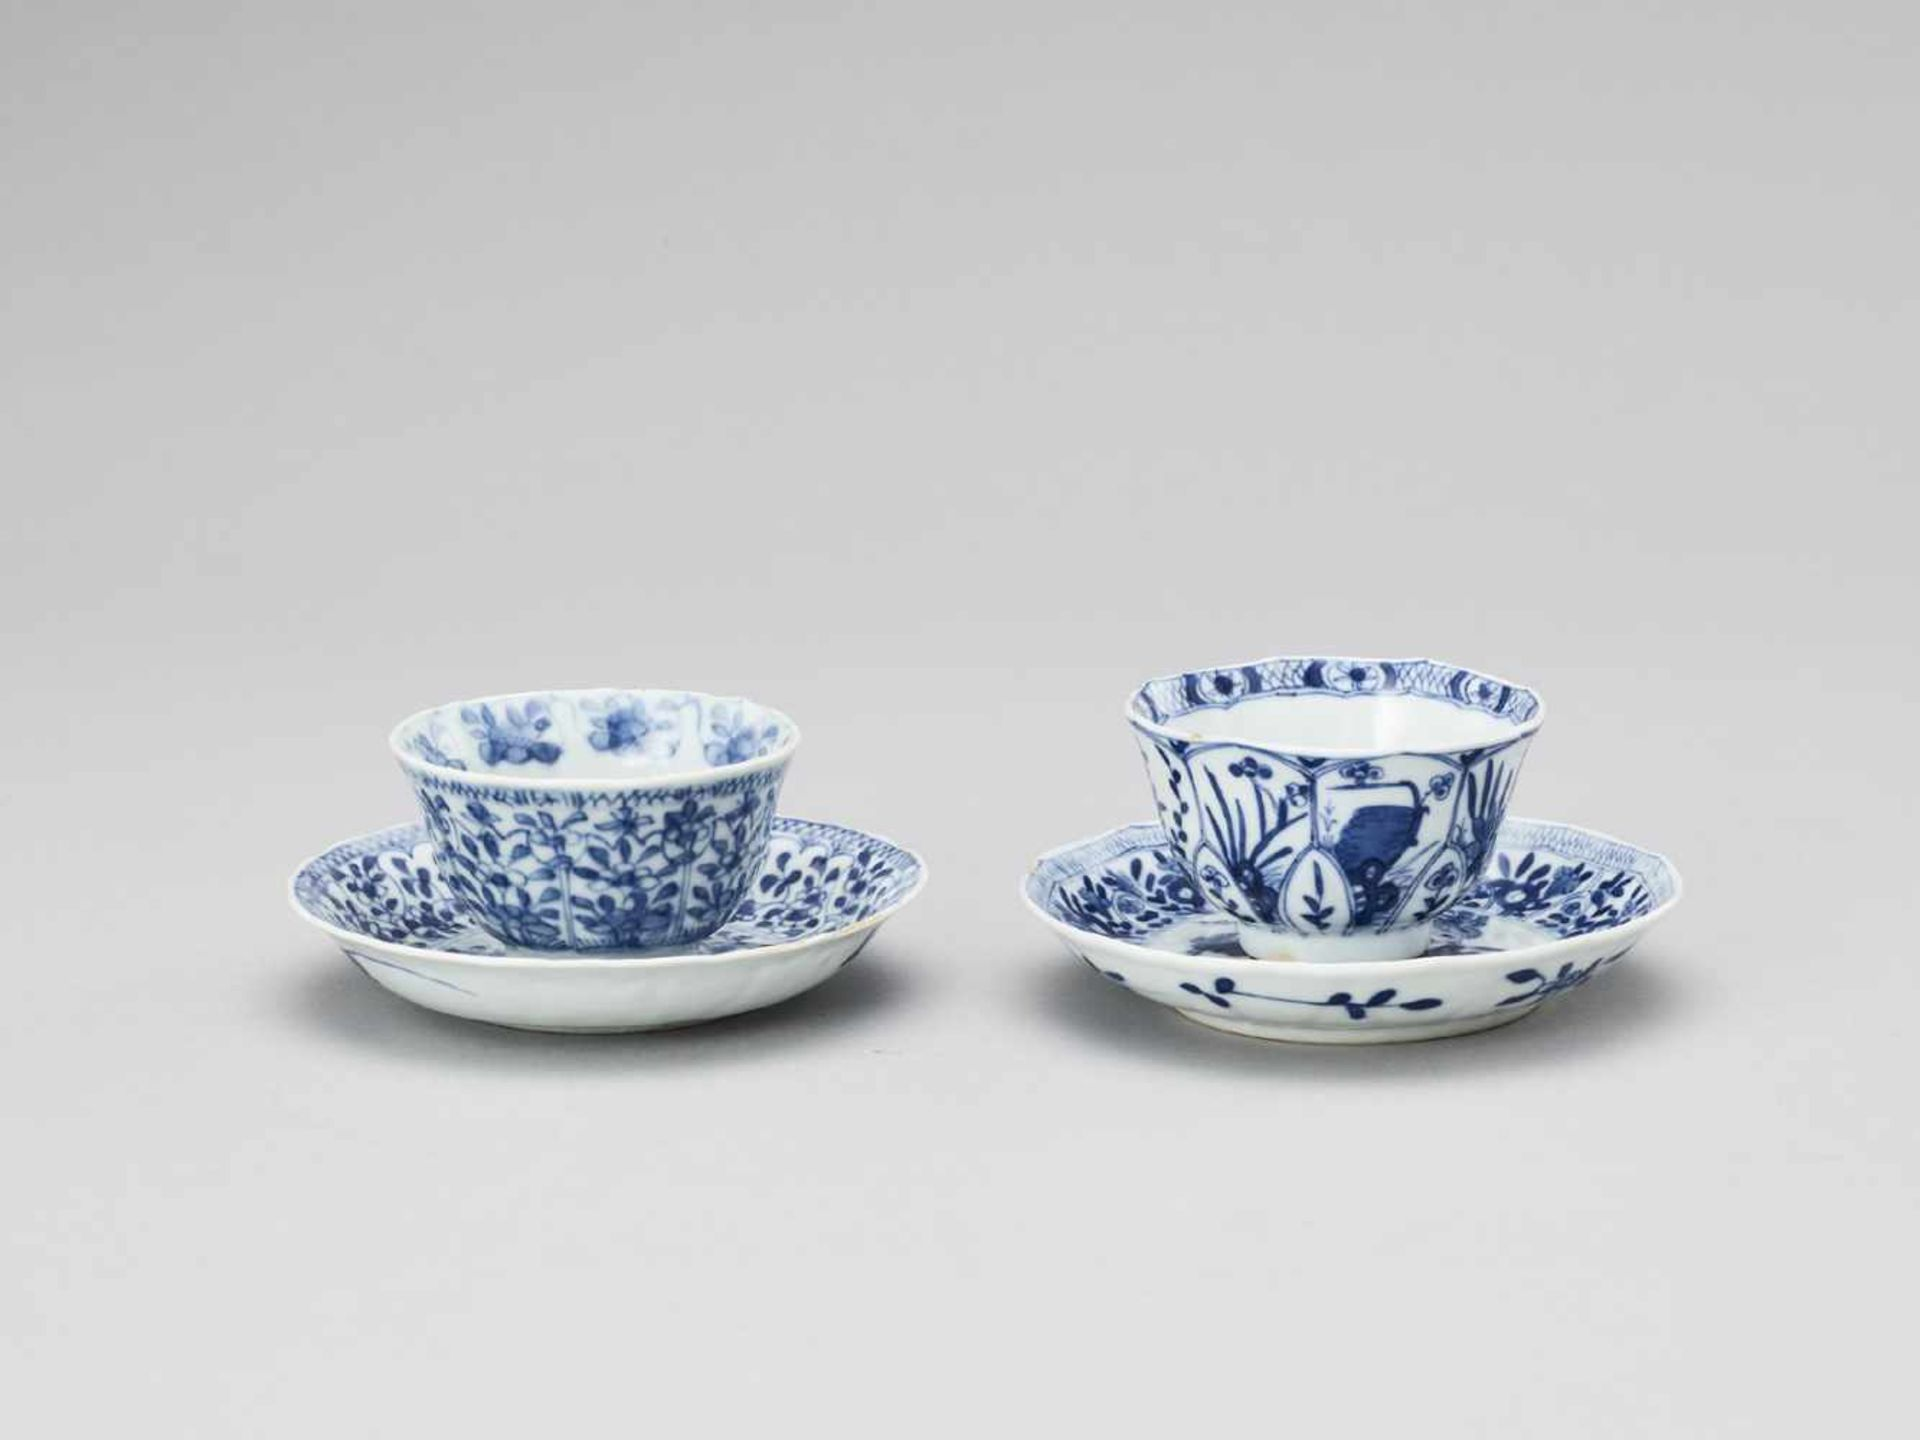 Los 419 - A PAIR OF BLUE AND WHITE PORCELAIN CUPS WITH MATCHING PLATES, KANGXI